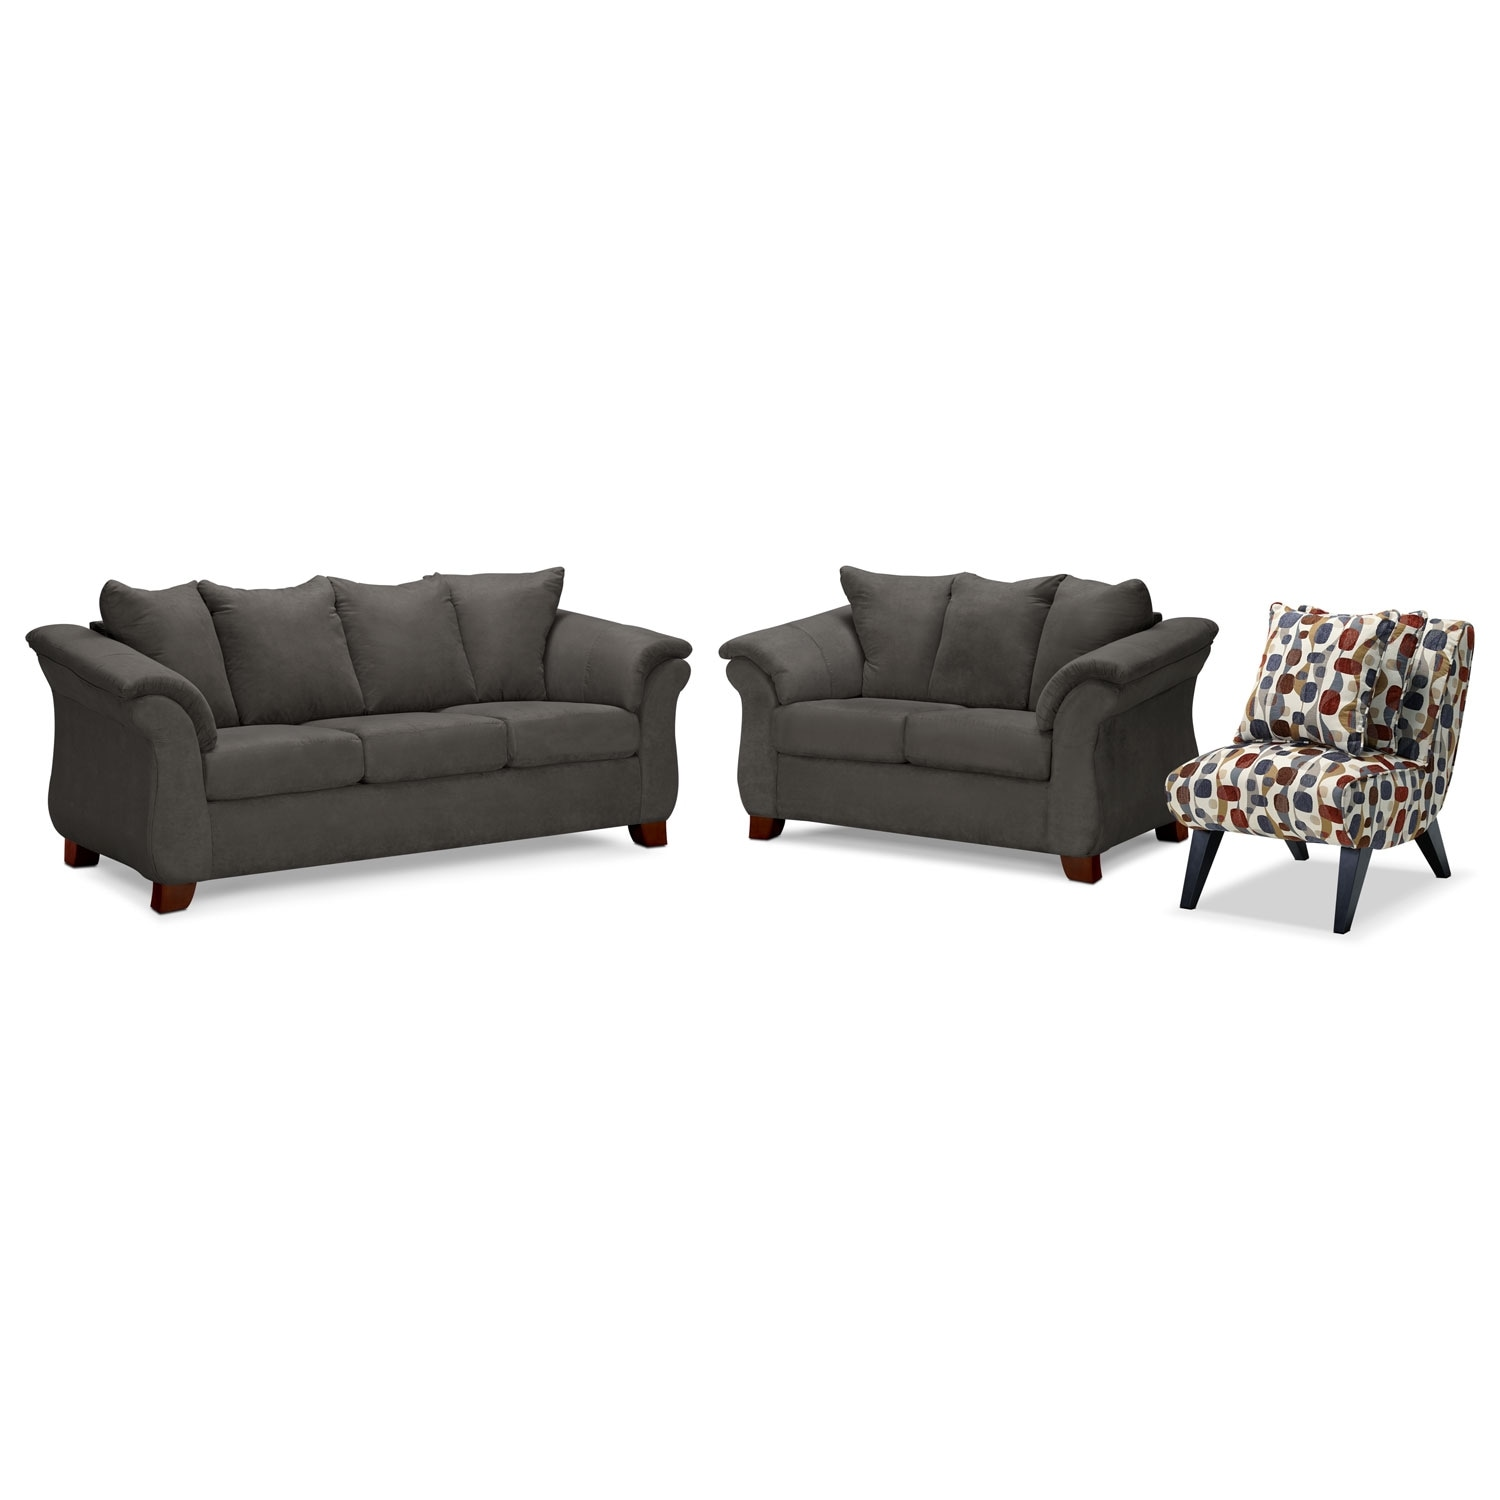 Adrian Sofa, Loveseat and Accent Chair Set - Graphite